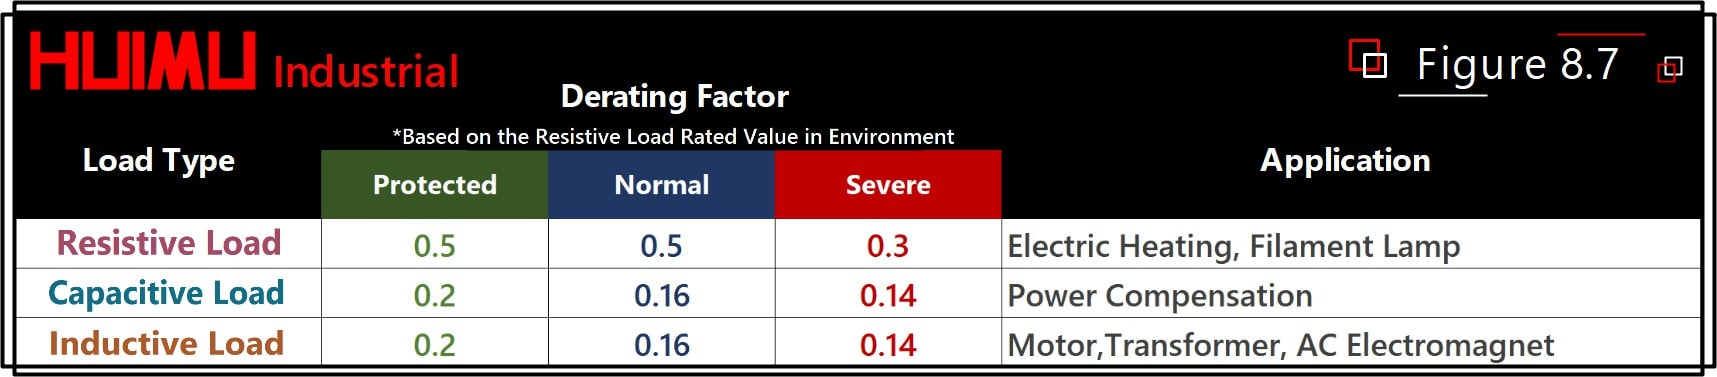 The table shows the recommended derating factor for the rated output current of solid-state relays applied on various loads at room temperature (the overload capability and the load surge current have been considered). There are two ways to use the derating factor: 1) The rated current value of the solid state relay can be selected according to the derating factor of different environments and different load types. The rated current of the SSR relay is equal to the continuous current value of the load divided by the derating factor. 2) If the solid-state relay has been selected and the load type or environment changes, the load current should be adjusted based on the load curve and the derating factor in certain environment. The adjusted current multiplied by the derating factor must be lower than the rated value of the solid state relay.